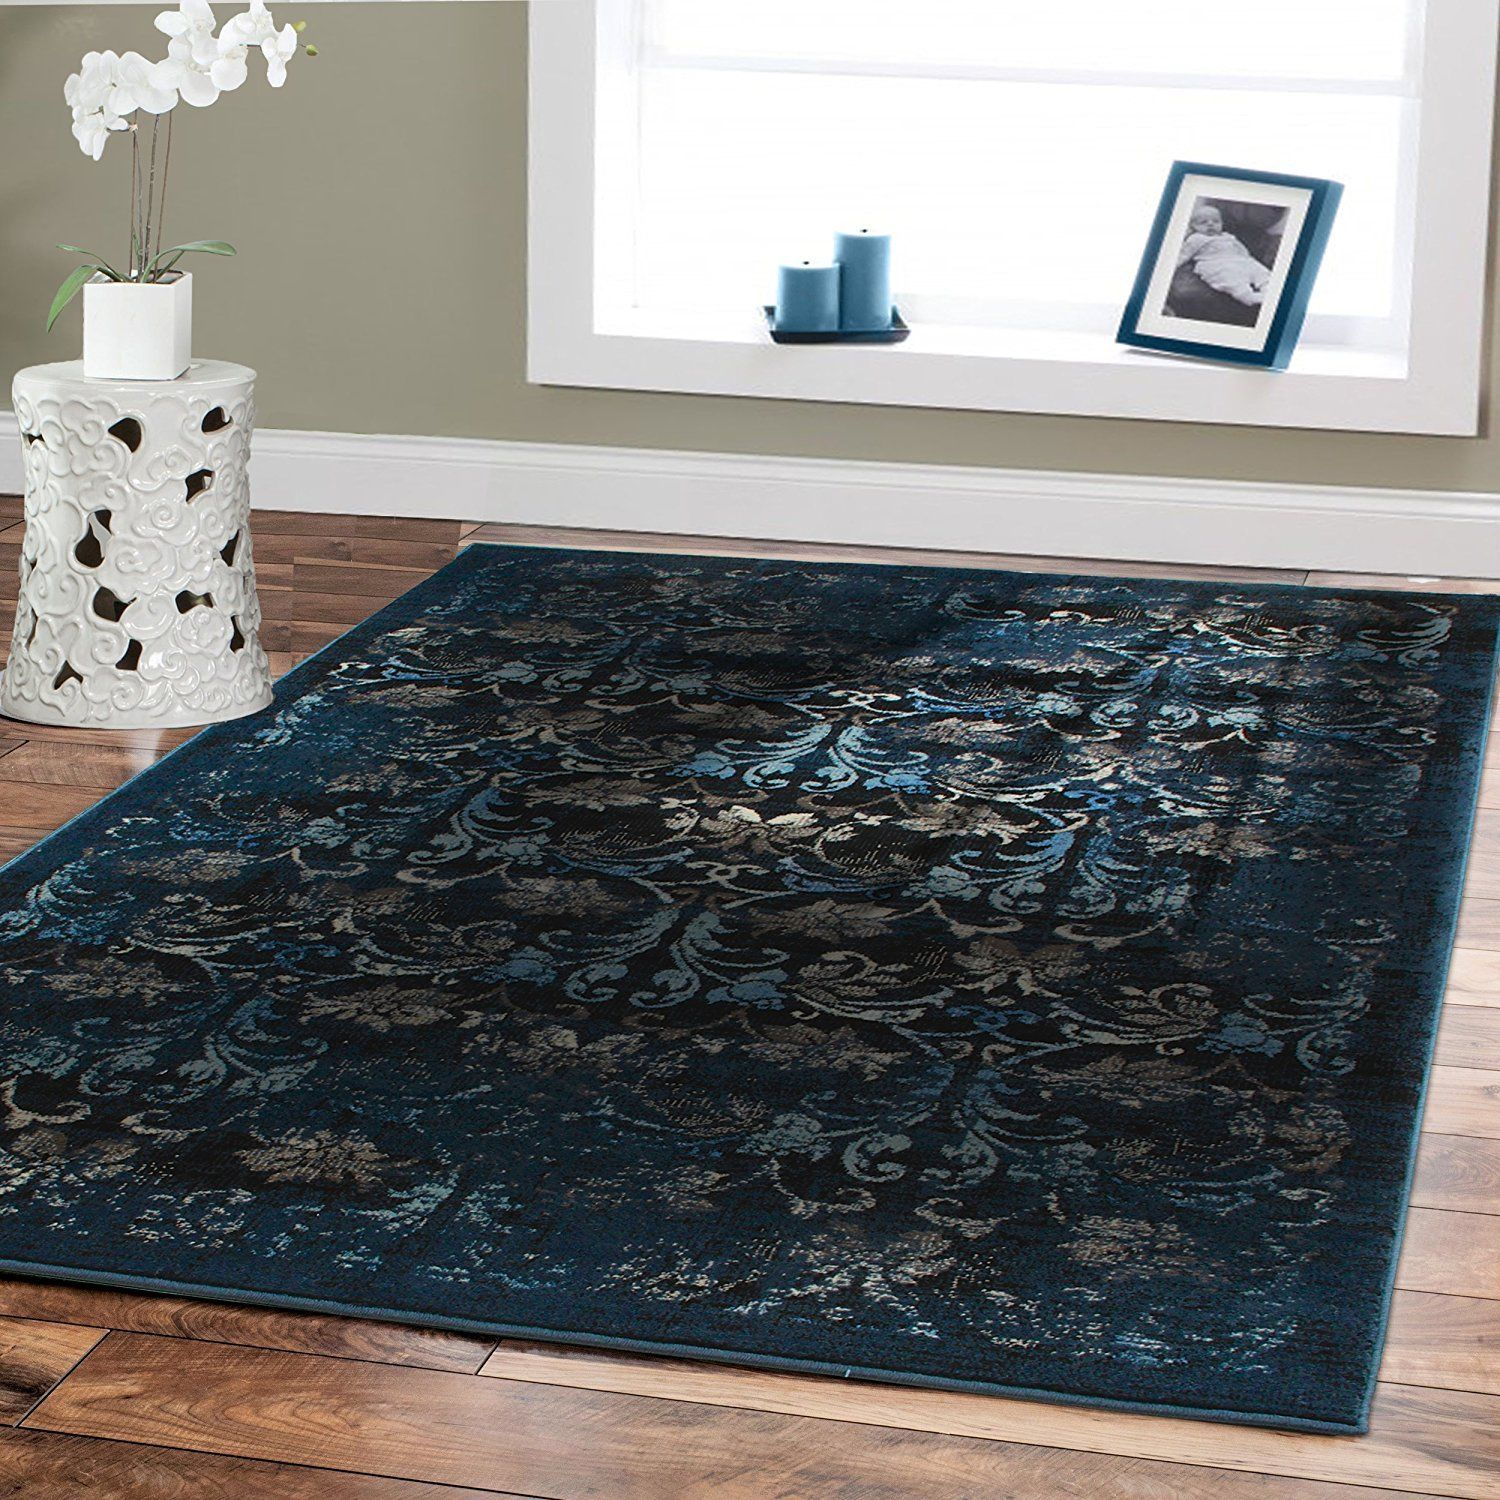 Large Area Rugs Abstract Carpet Navy Floral Rug Multiple Size Living Room Blue Outdoor Rug Contemporary Area Rugs 8x10 Area Rugs